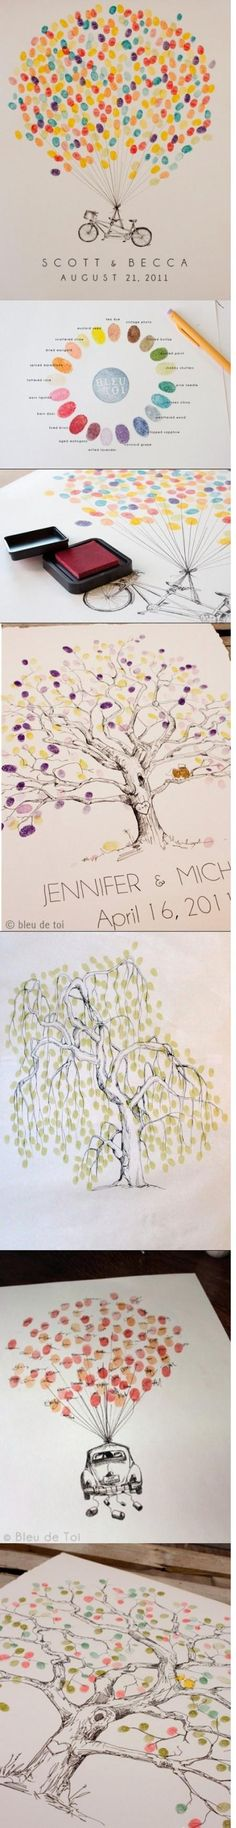 Beautiful family tree art #pinparty